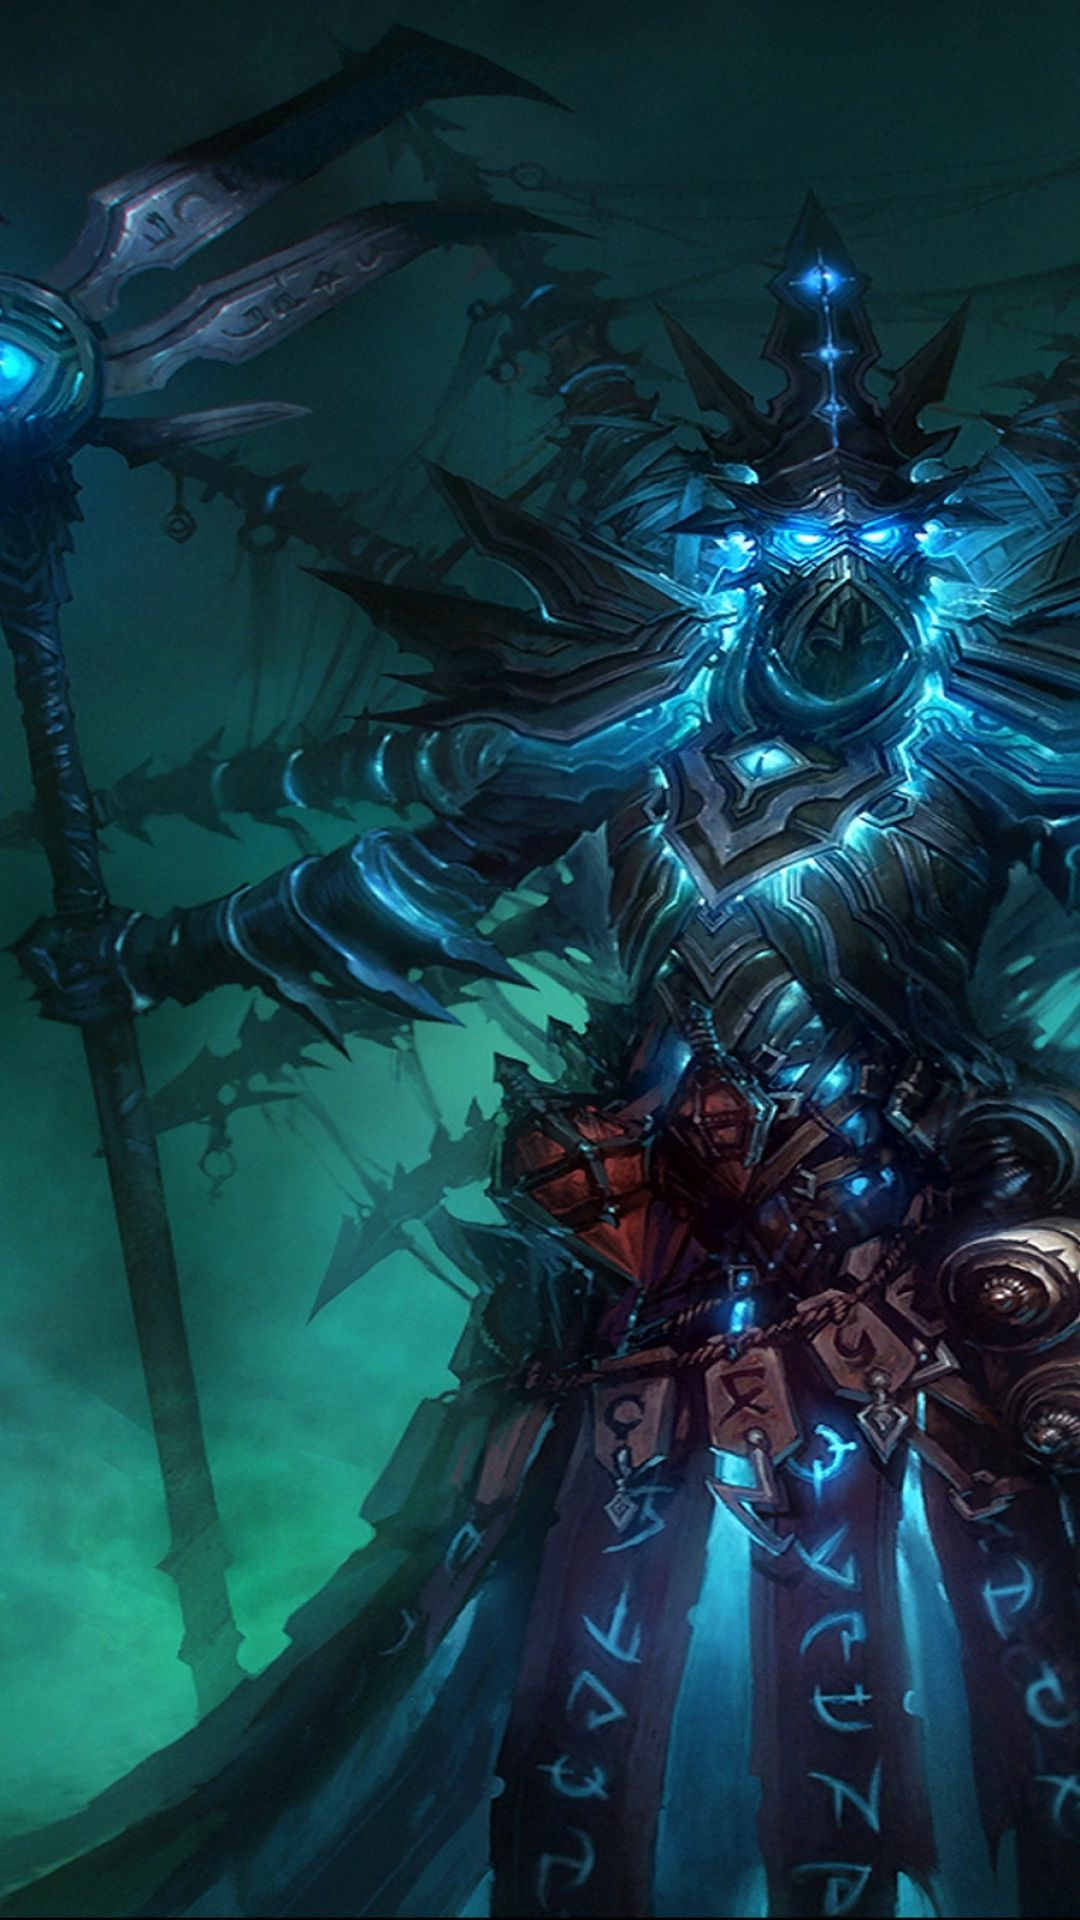 1080x1920 Video Game/Warhammer (1080x1920) Wallpaper ID: 228501 - Mobile Abyss